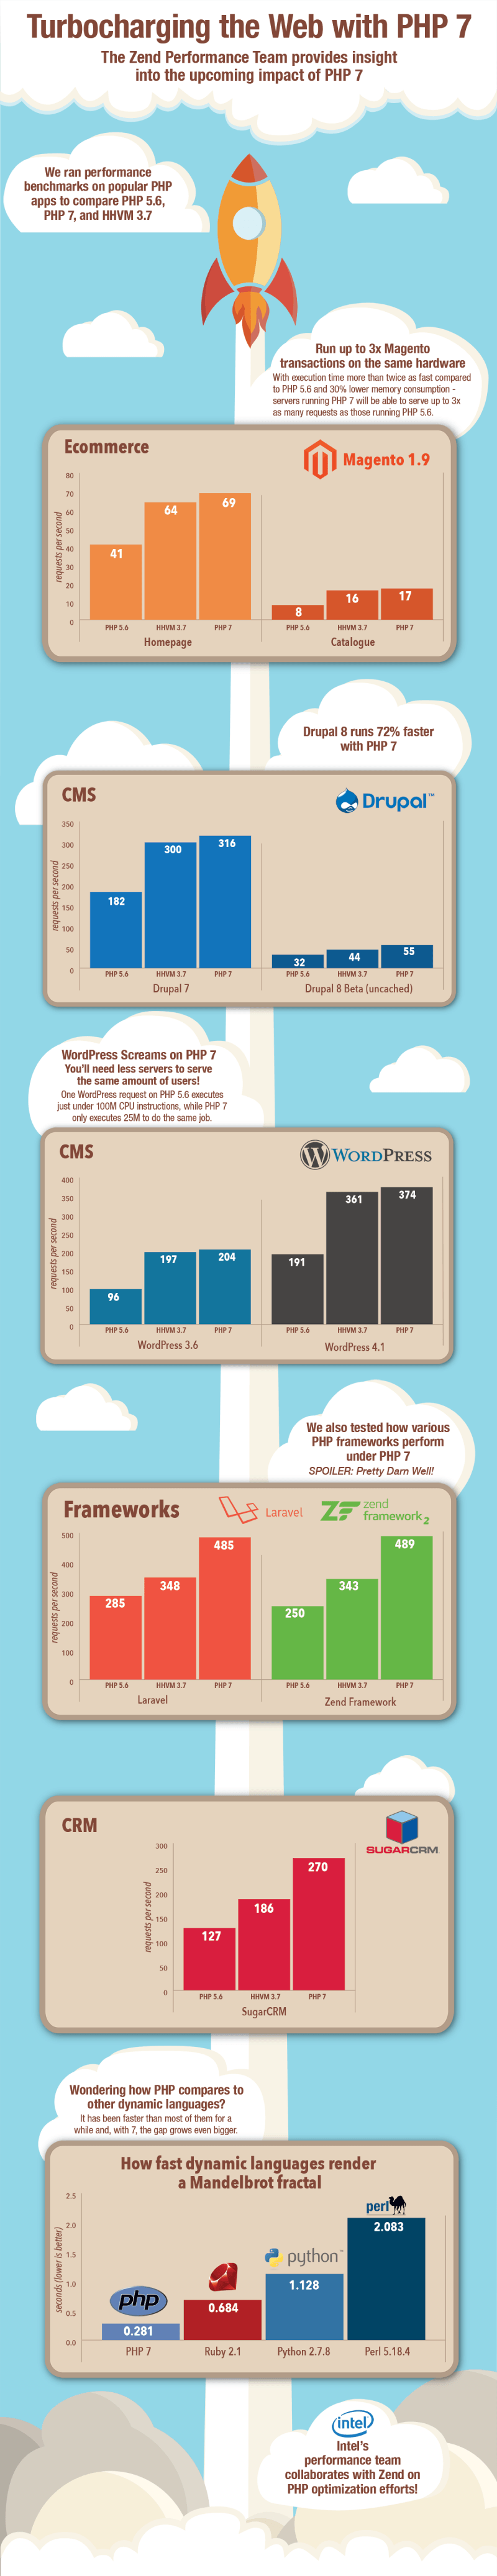 php7 performance comparison infographic